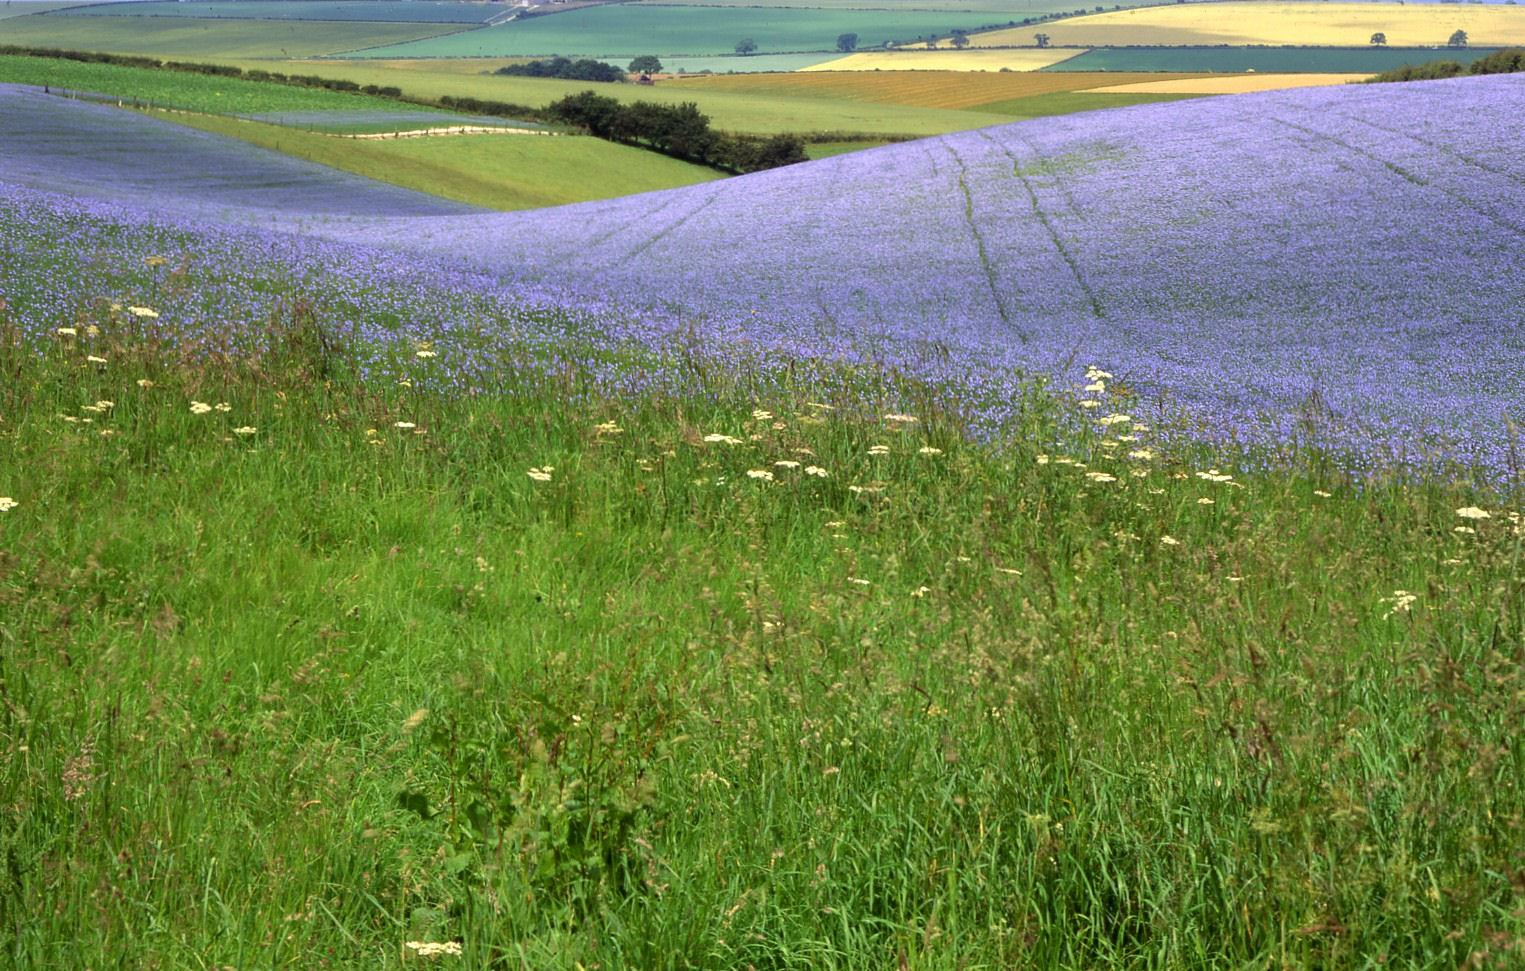 The lovely Yorkshire Wolds